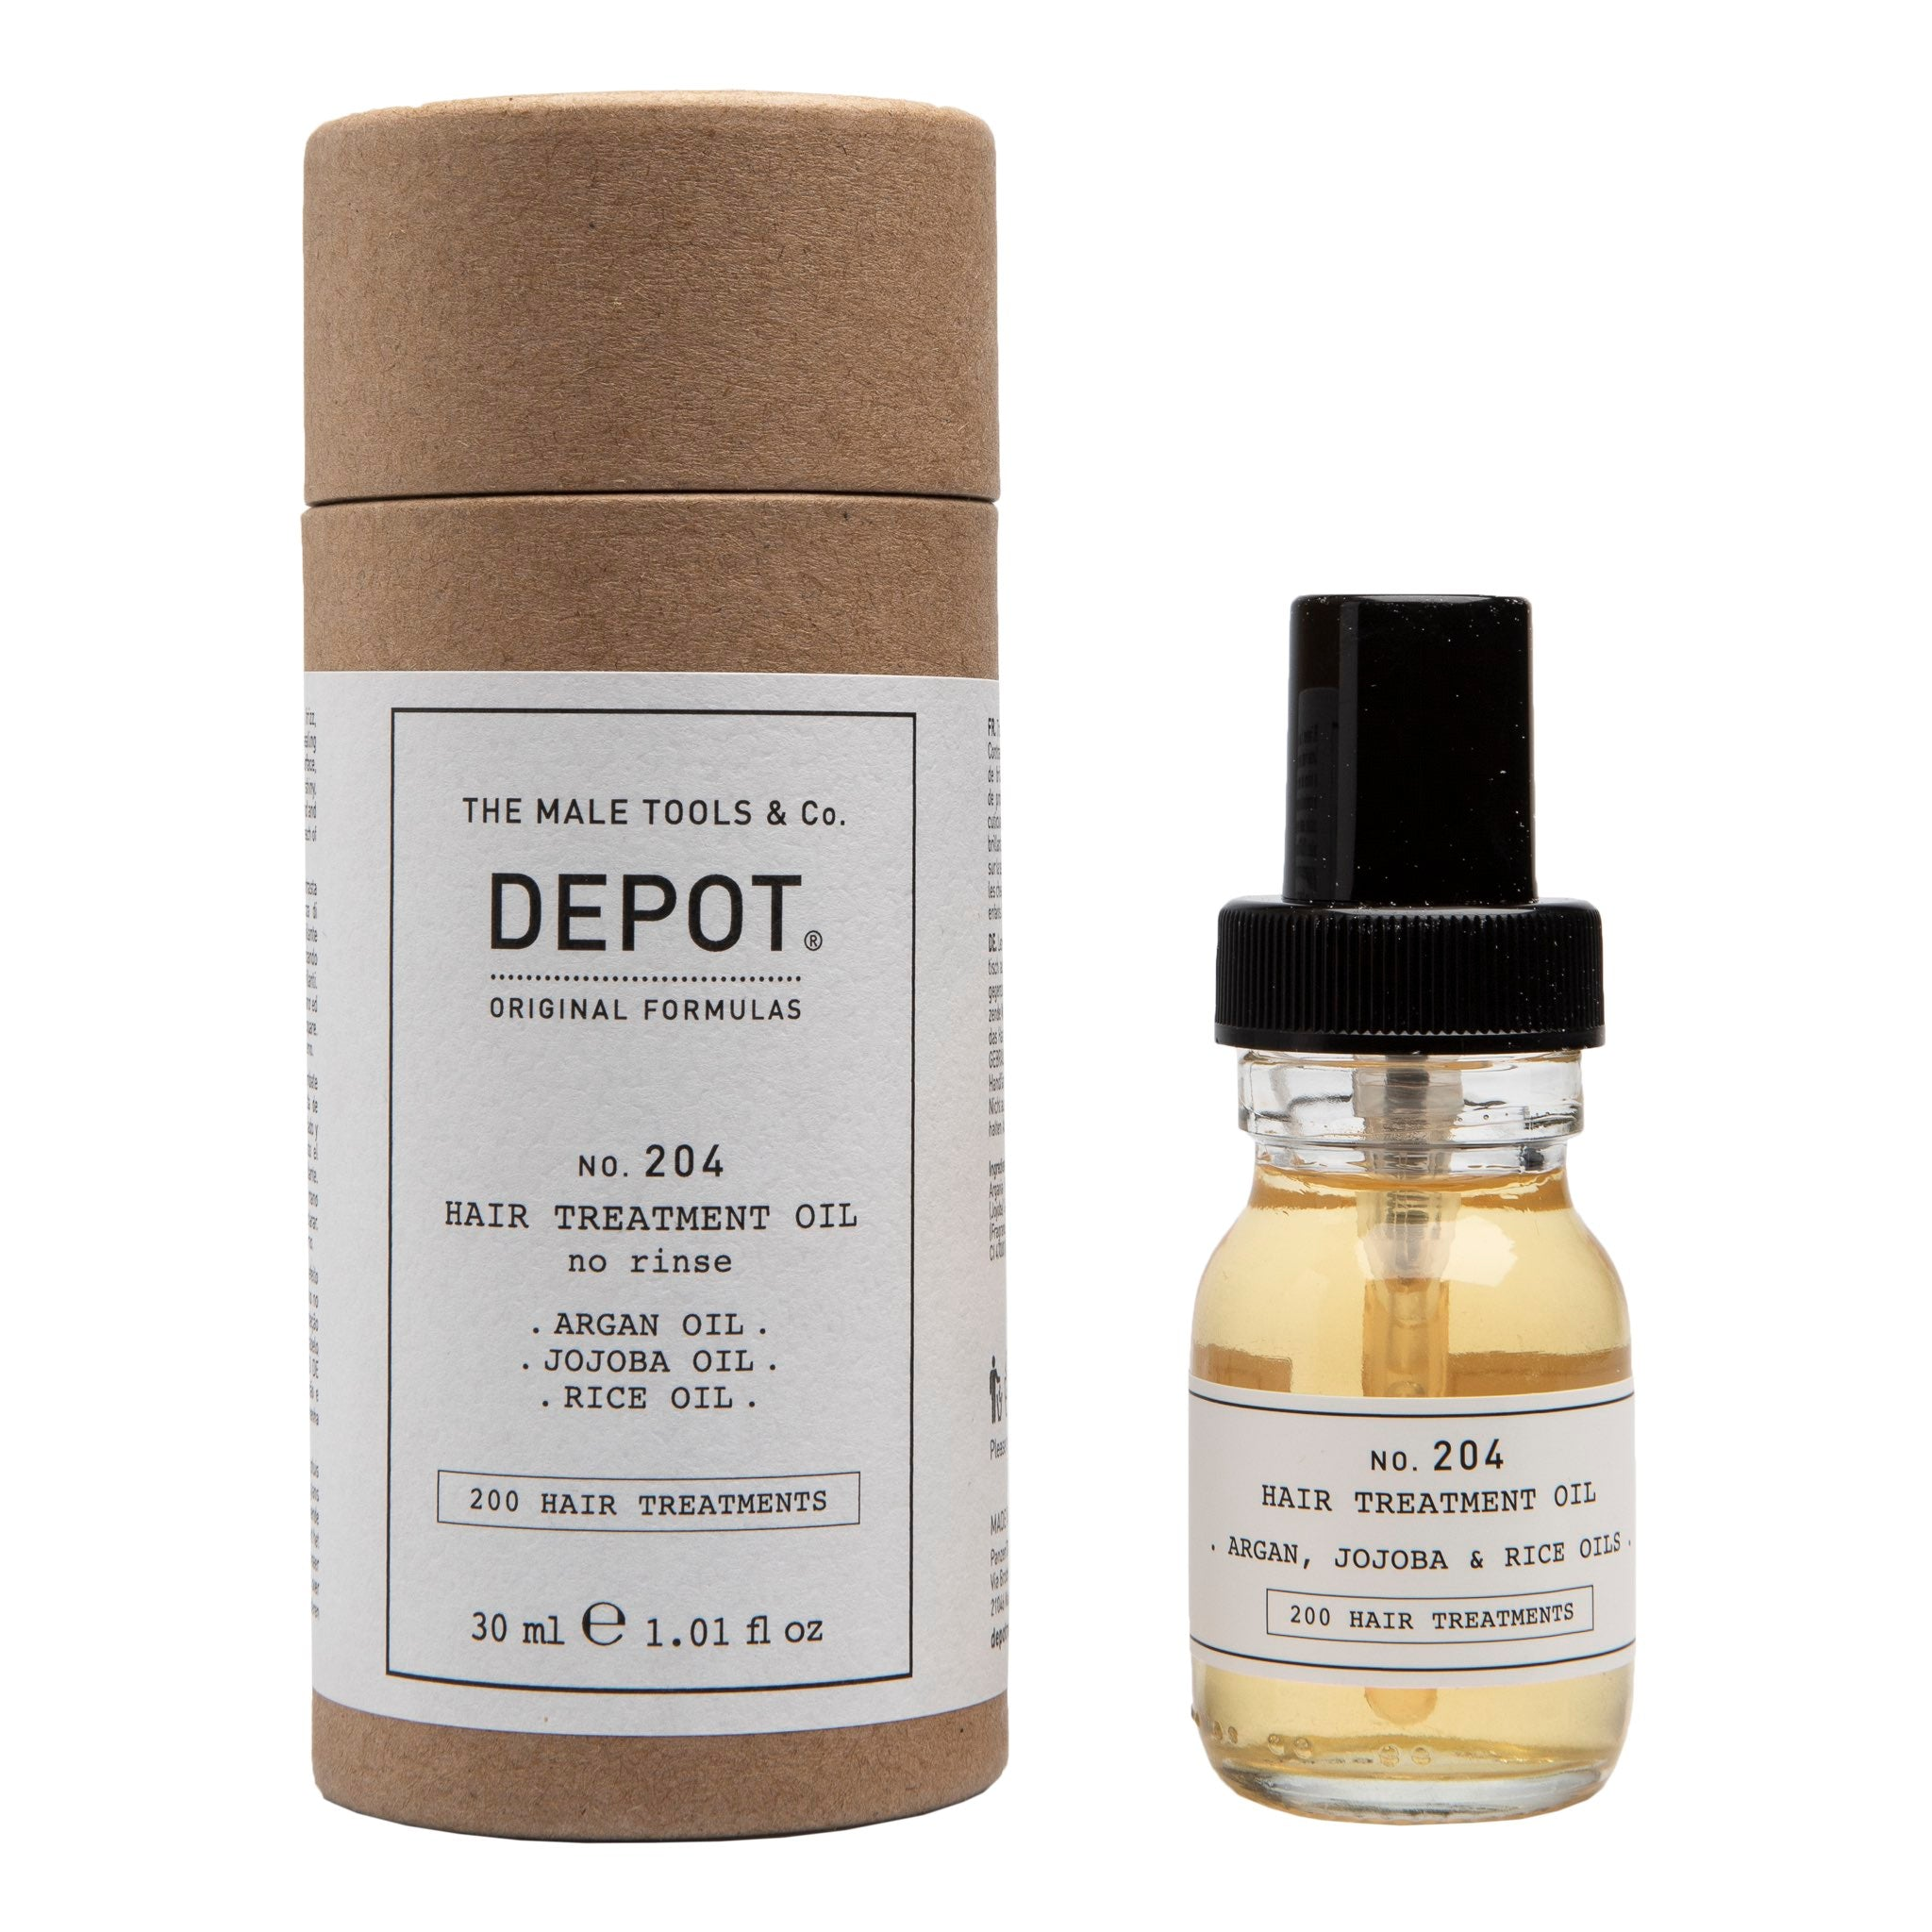 Depot No. 204 Hair Treatment Oil hårolje